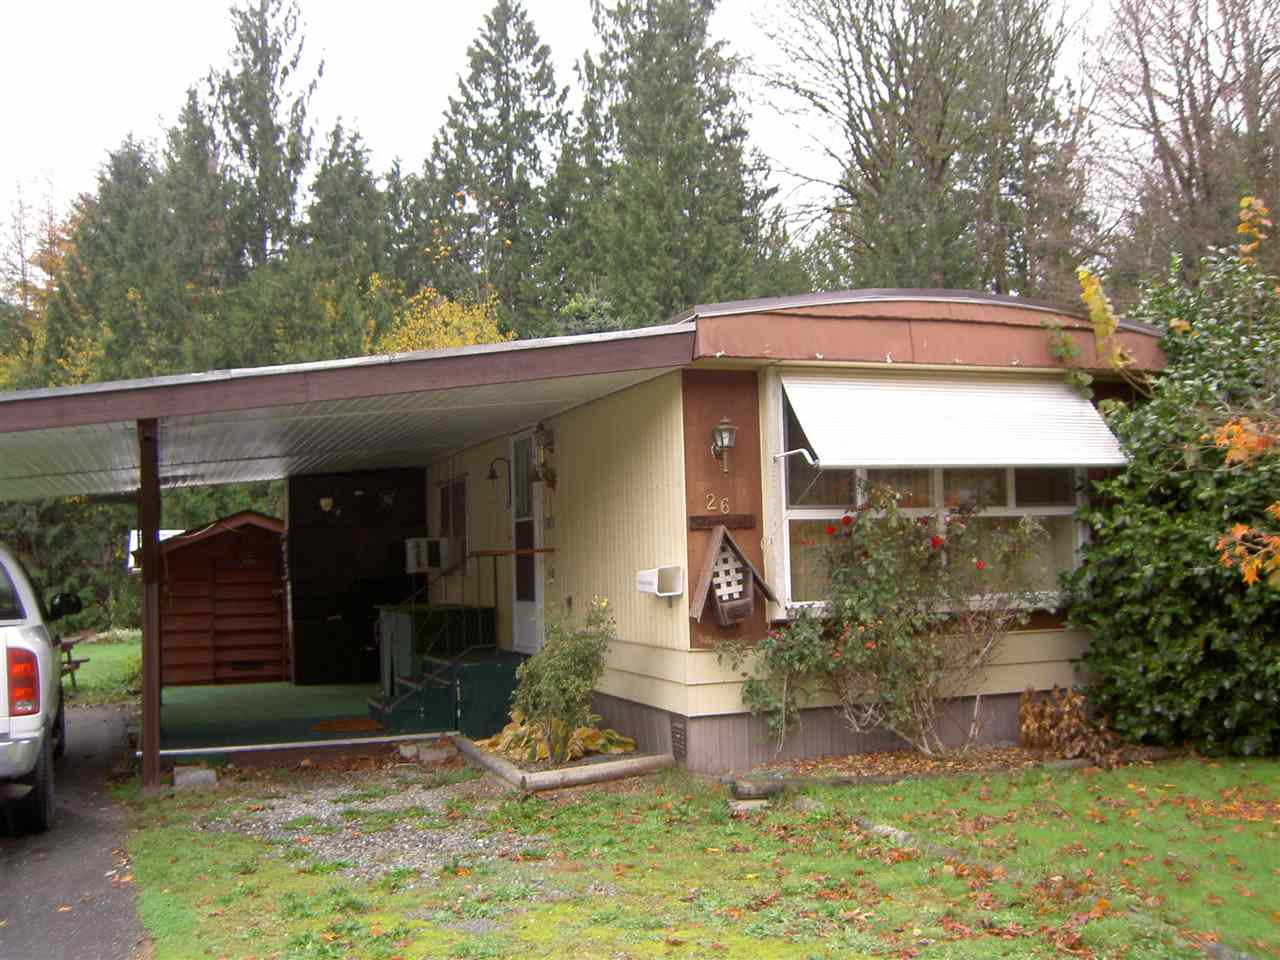 "Main Photo: 26 45955 SLEEPY HOLLOW Road in Chilliwack: Cultus Lake Manufactured Home for sale in ""LIUMCHEN VILLAGE"" : MLS® # R2035594"